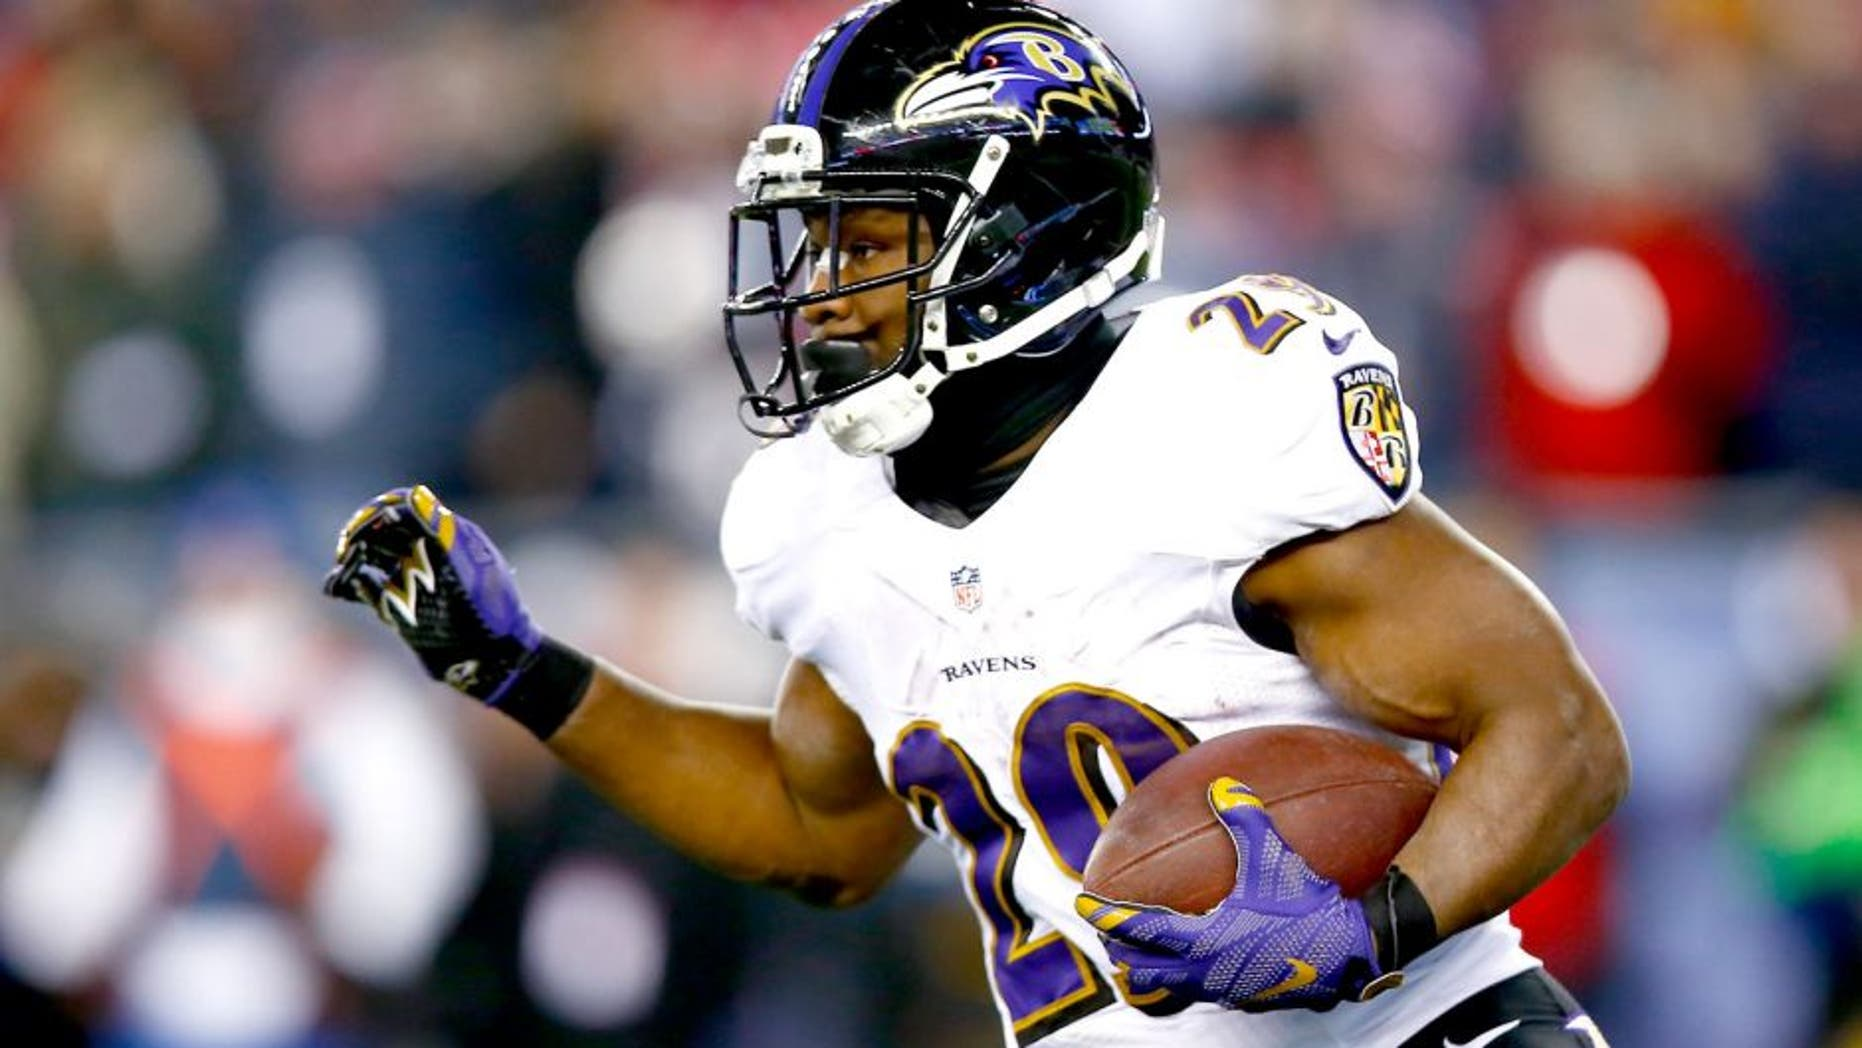 FOXBORO, MA - JANUARY 10: Justin Forsett #29 of the Baltimore Ravens carries the ball during the second half of the 2015 AFC Divisional Playoffs game against the New England Patriots at Gillette Stadium on January 10, 2015 in Foxboro, Massachusetts. (Photo by Jared Wickerham/Getty Images)